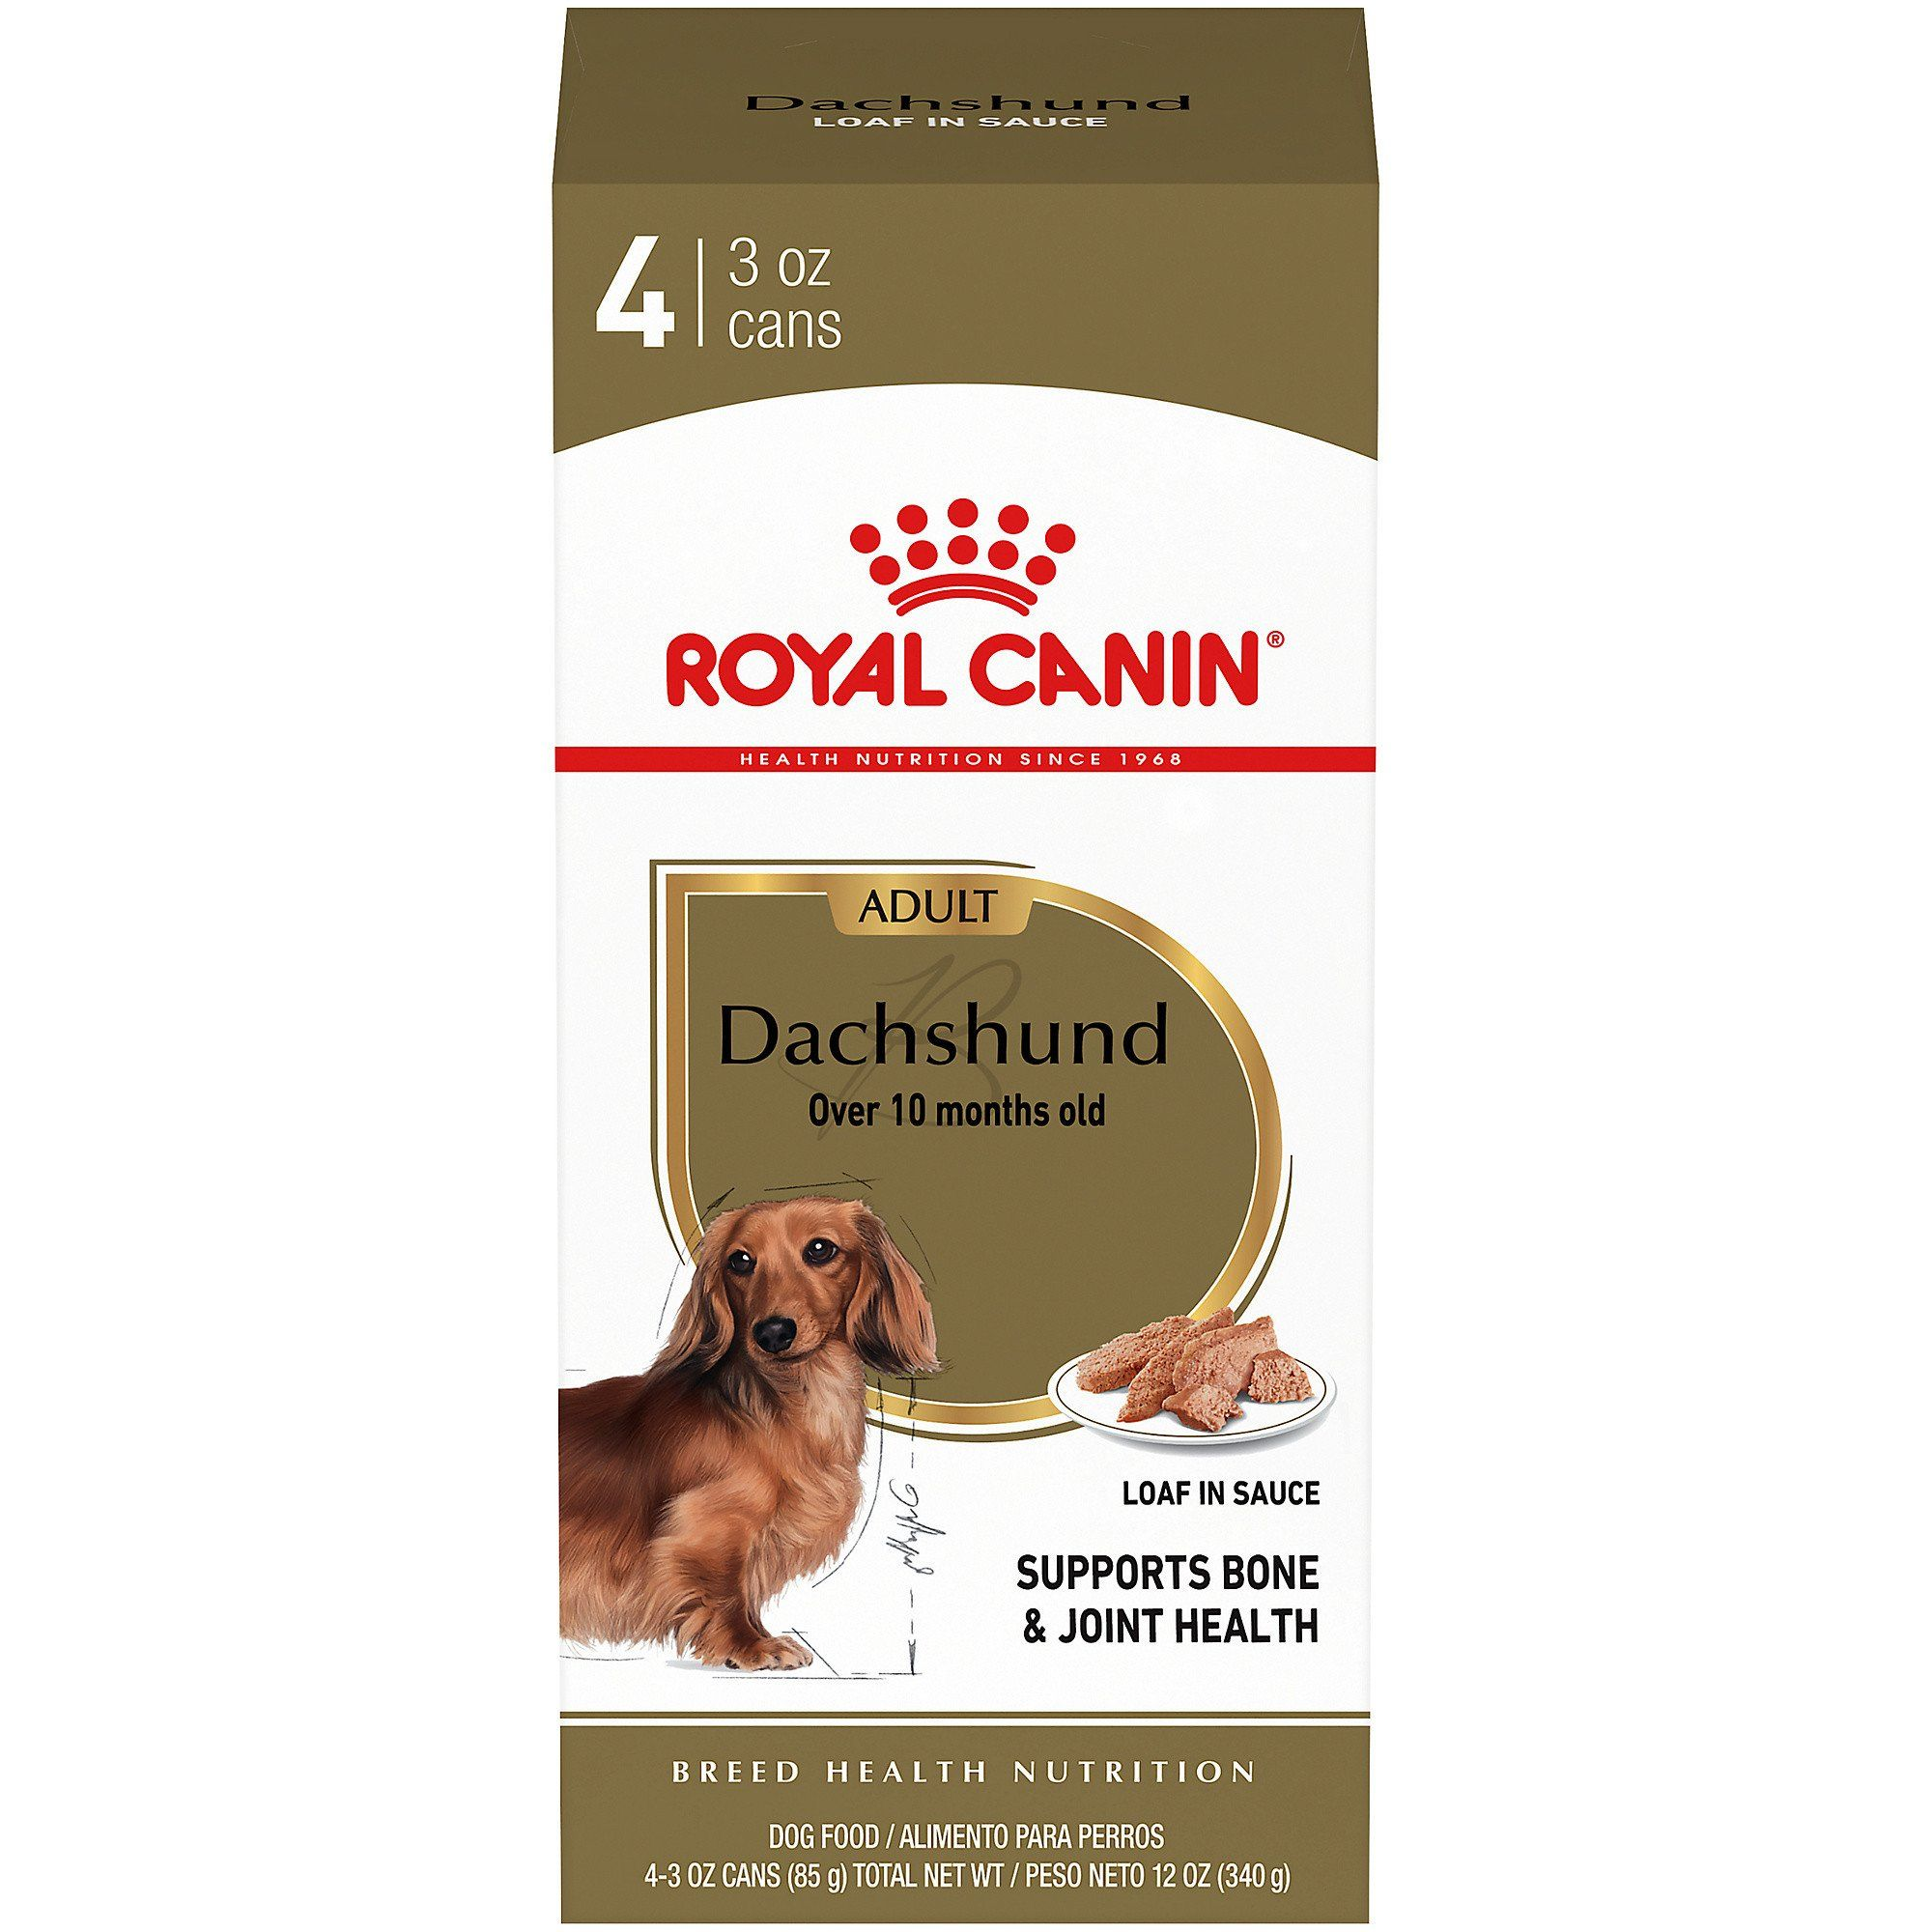 Royal Canin Breed Health Nutrition Dachshund Loaf In Sauce Dog